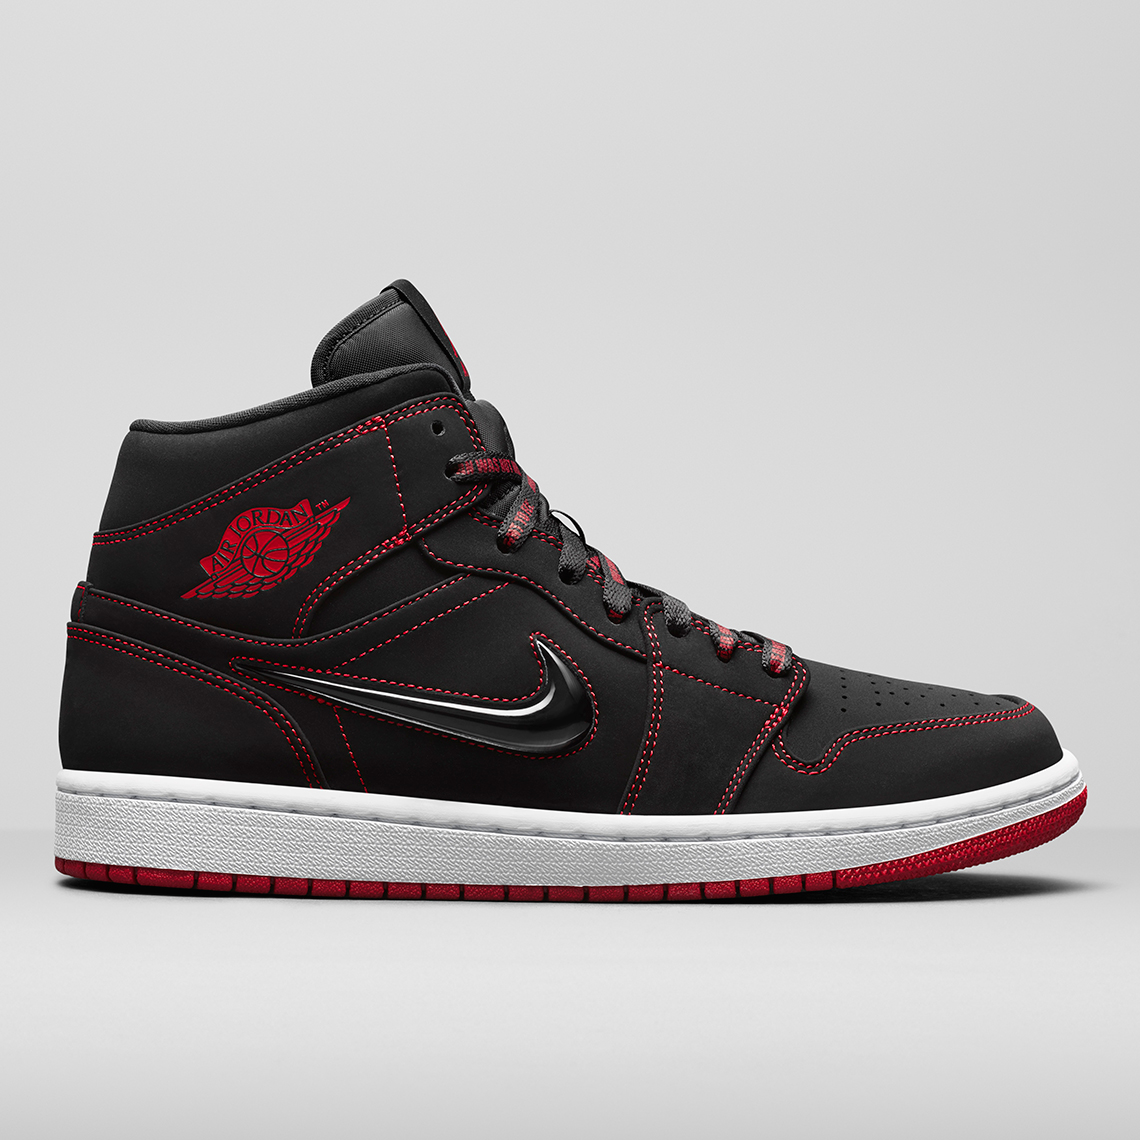 jordan-1-mid-fearless-come-fly-with-me